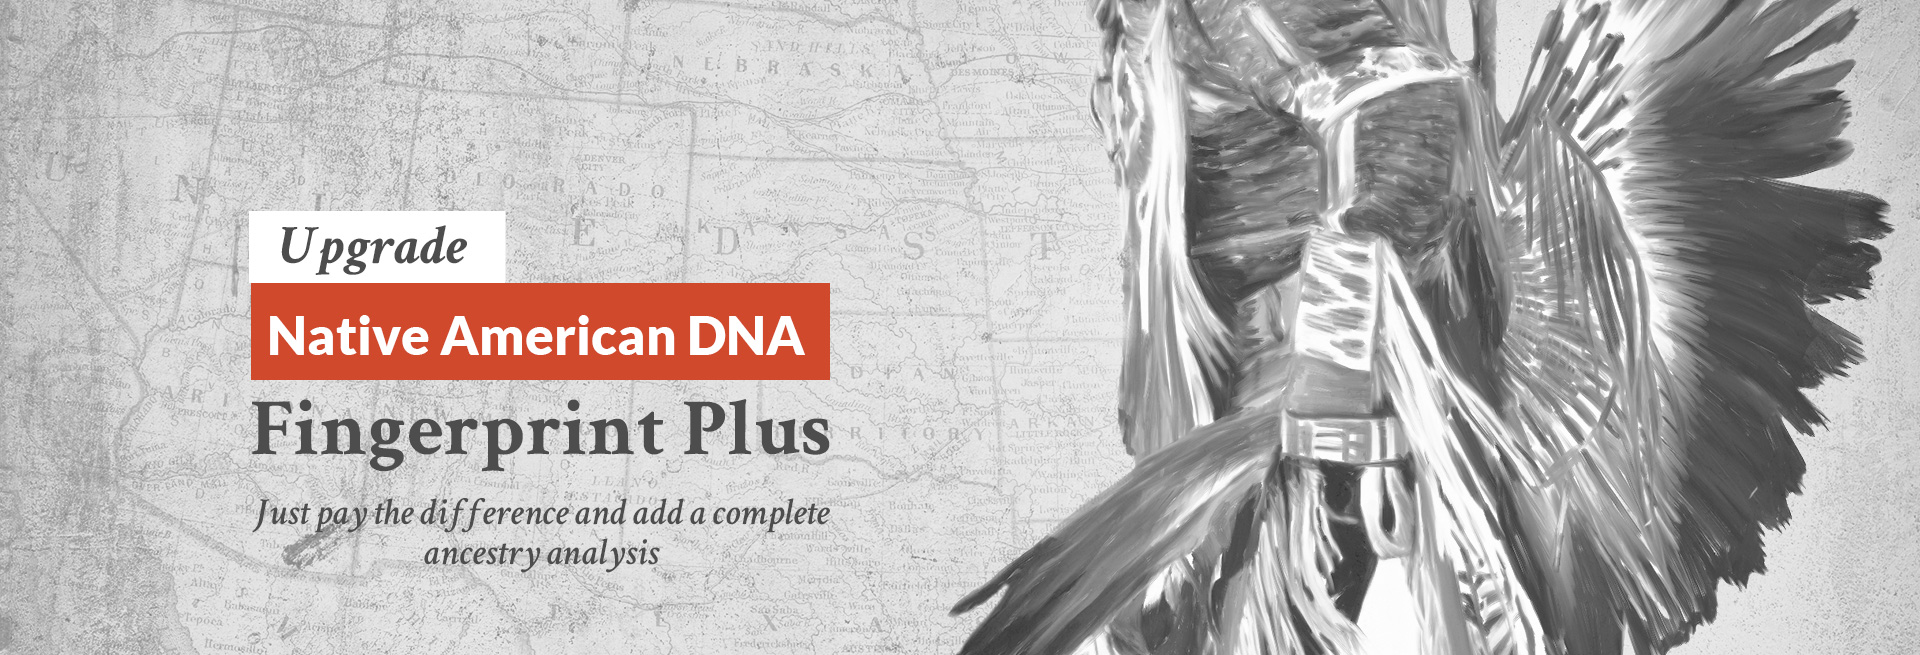 native american dna upgrade test